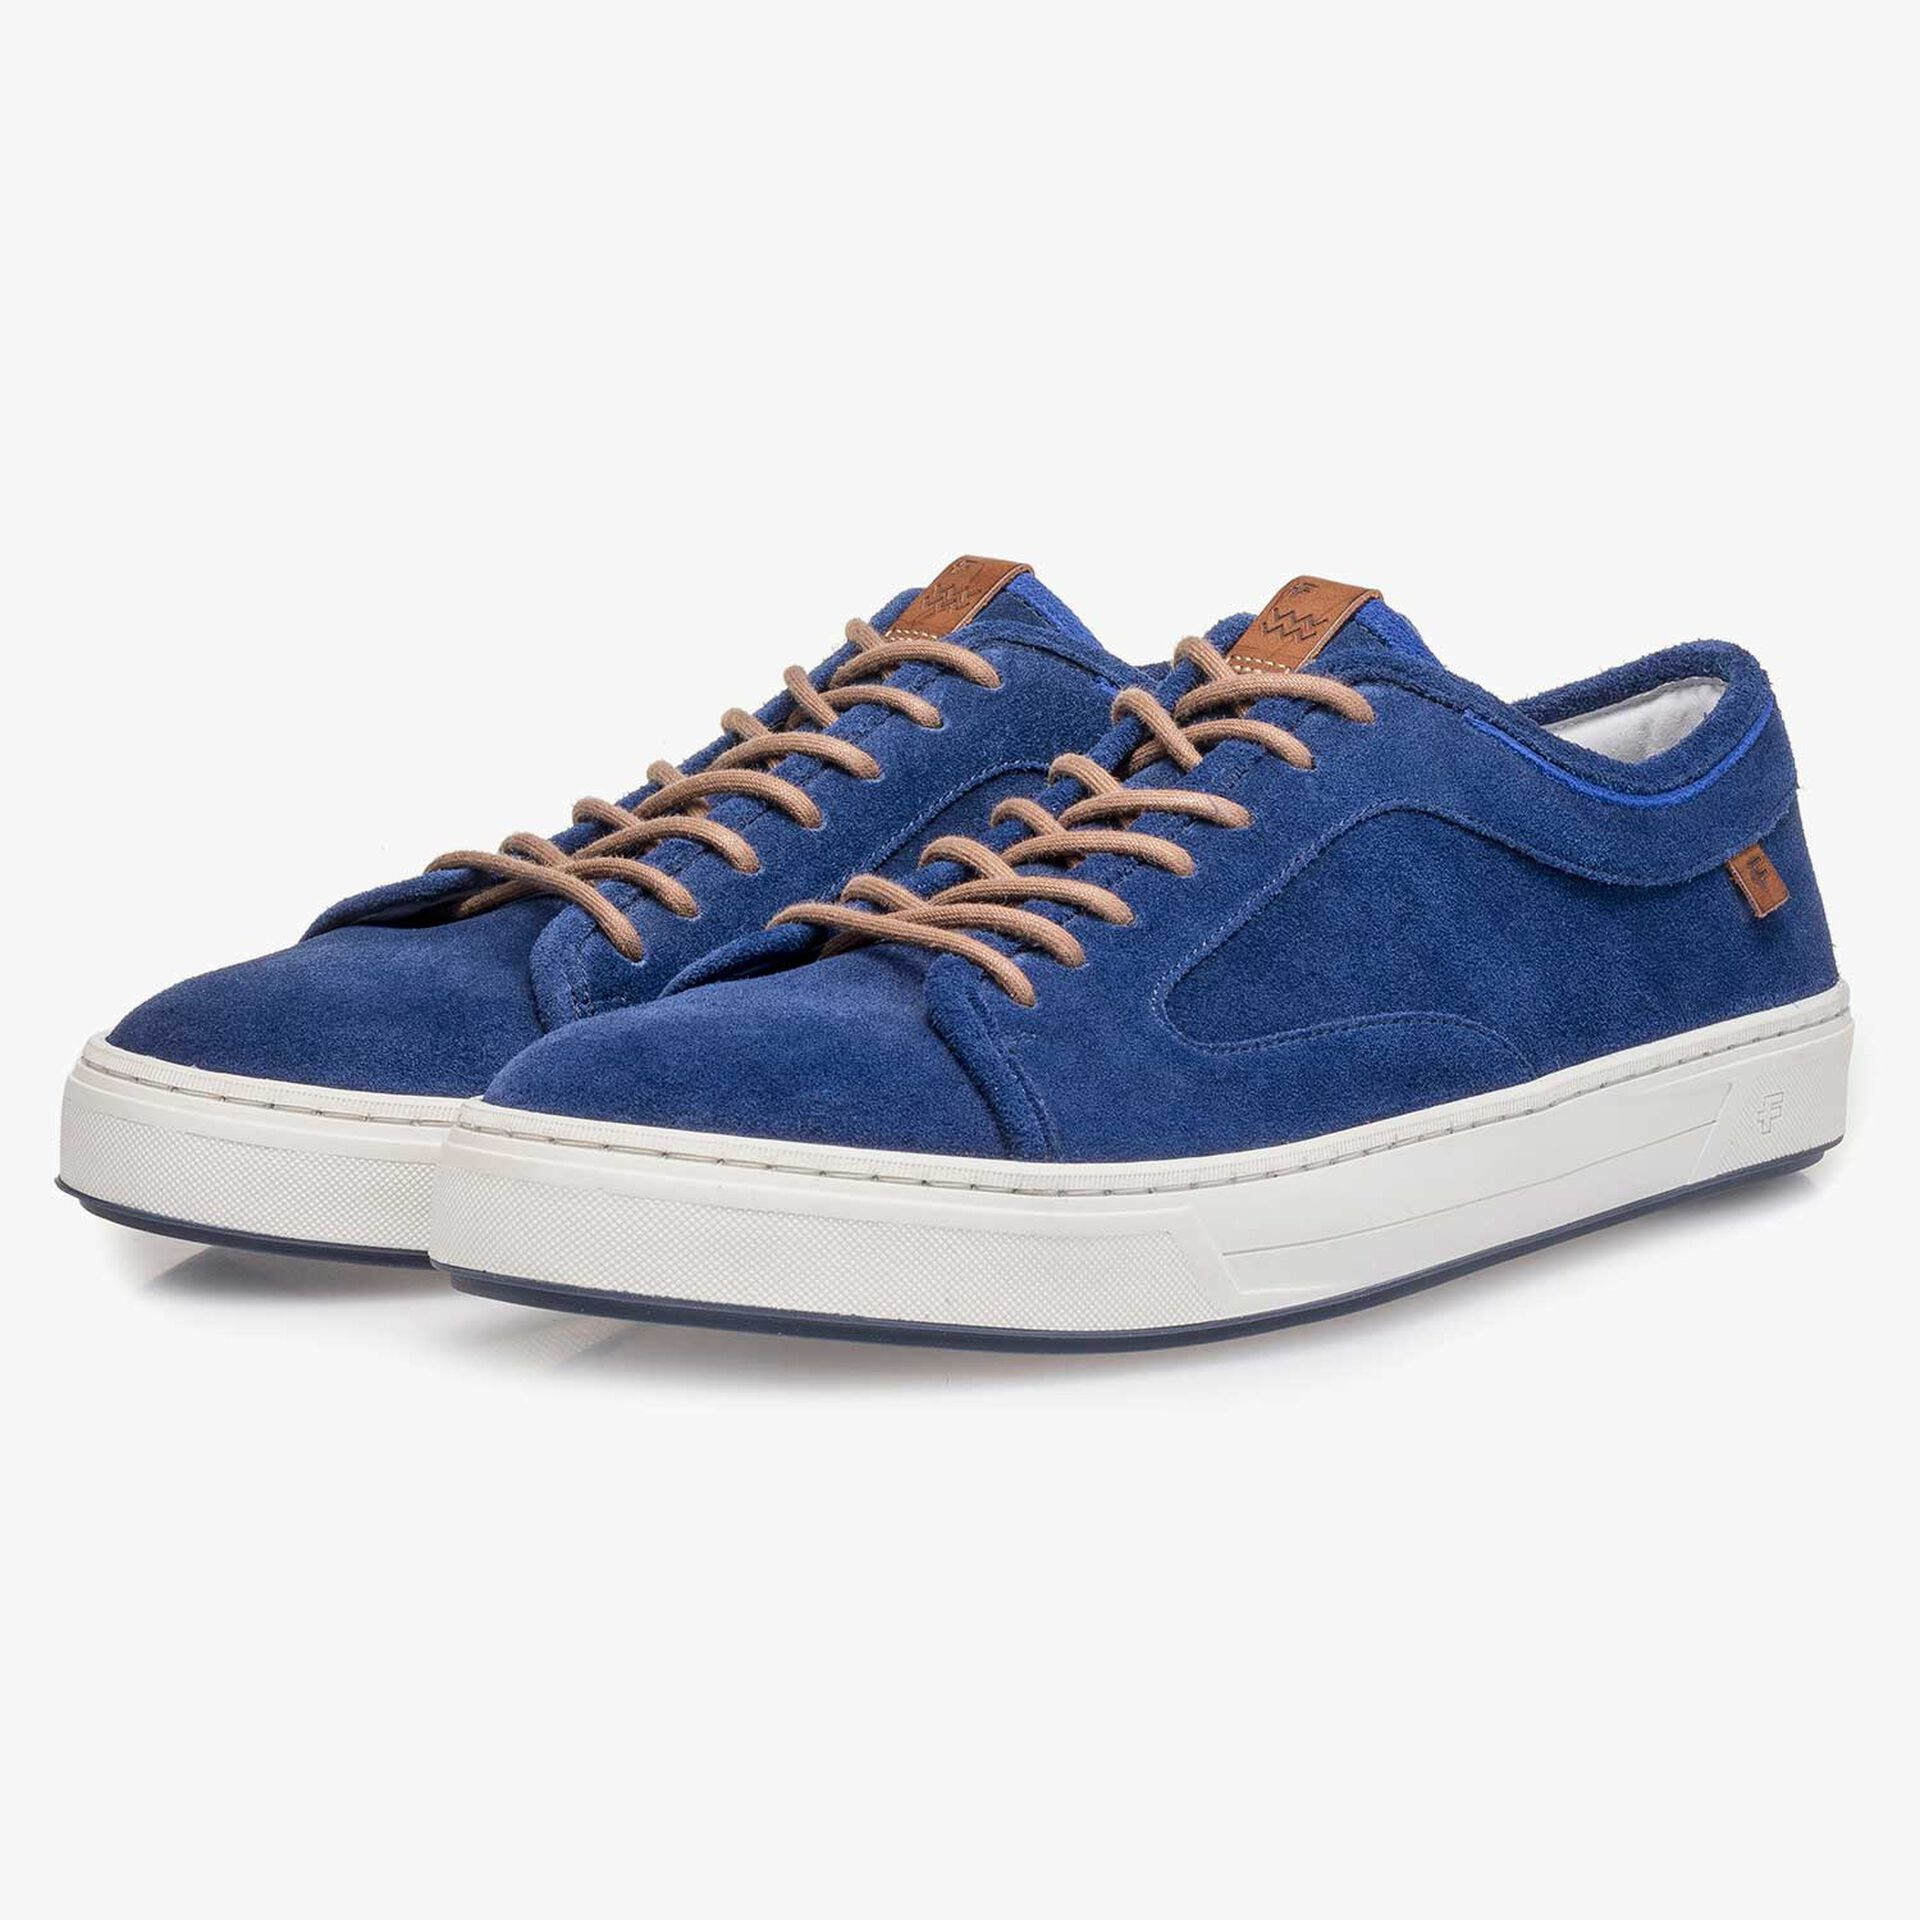 Blue washed suede leather sneaker